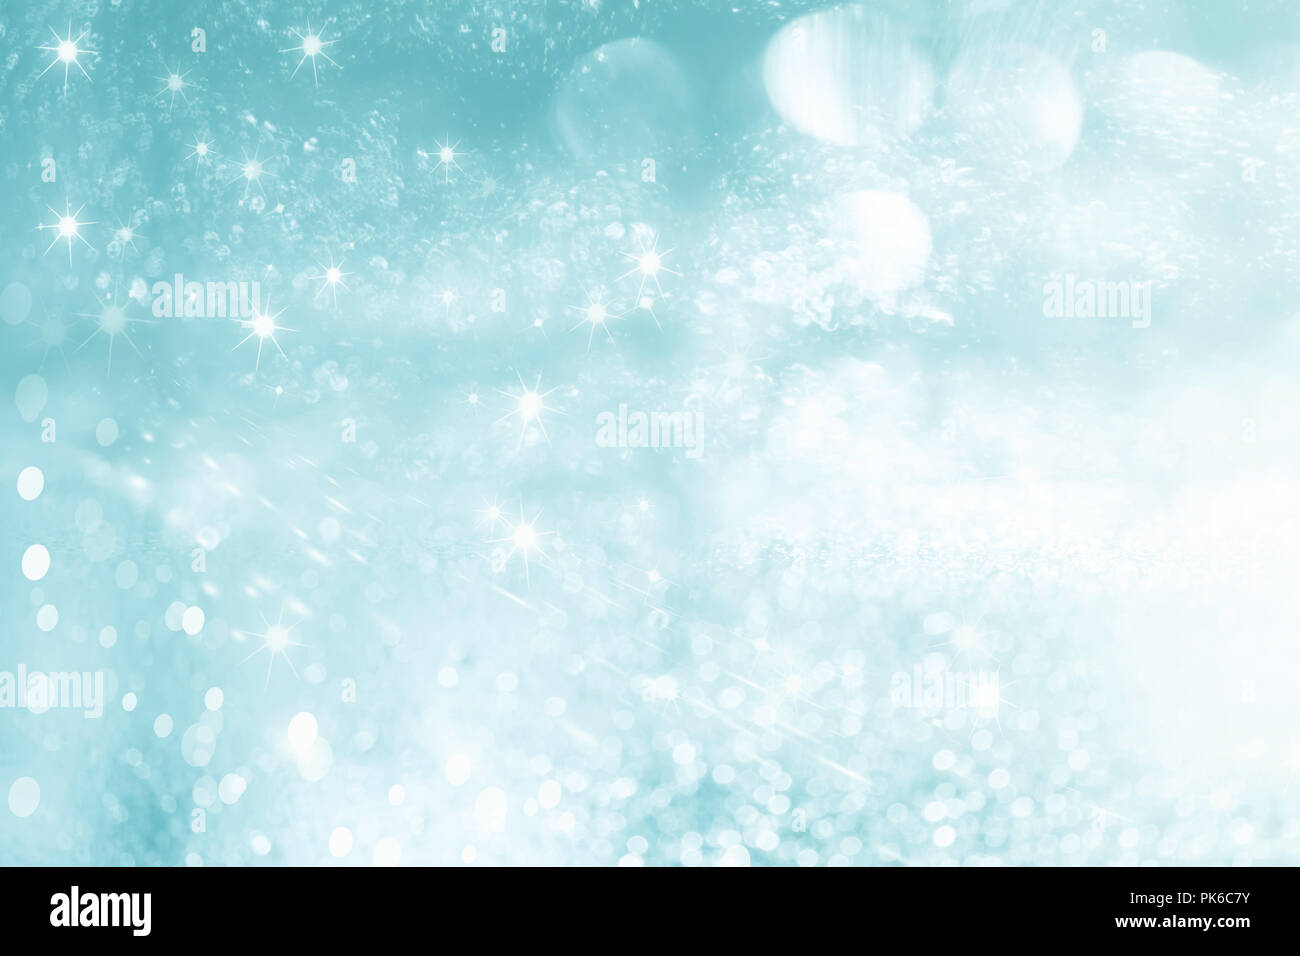 Turquoise abstract blurred sparkling christmas background with bokeh and asterisks - Stock Image